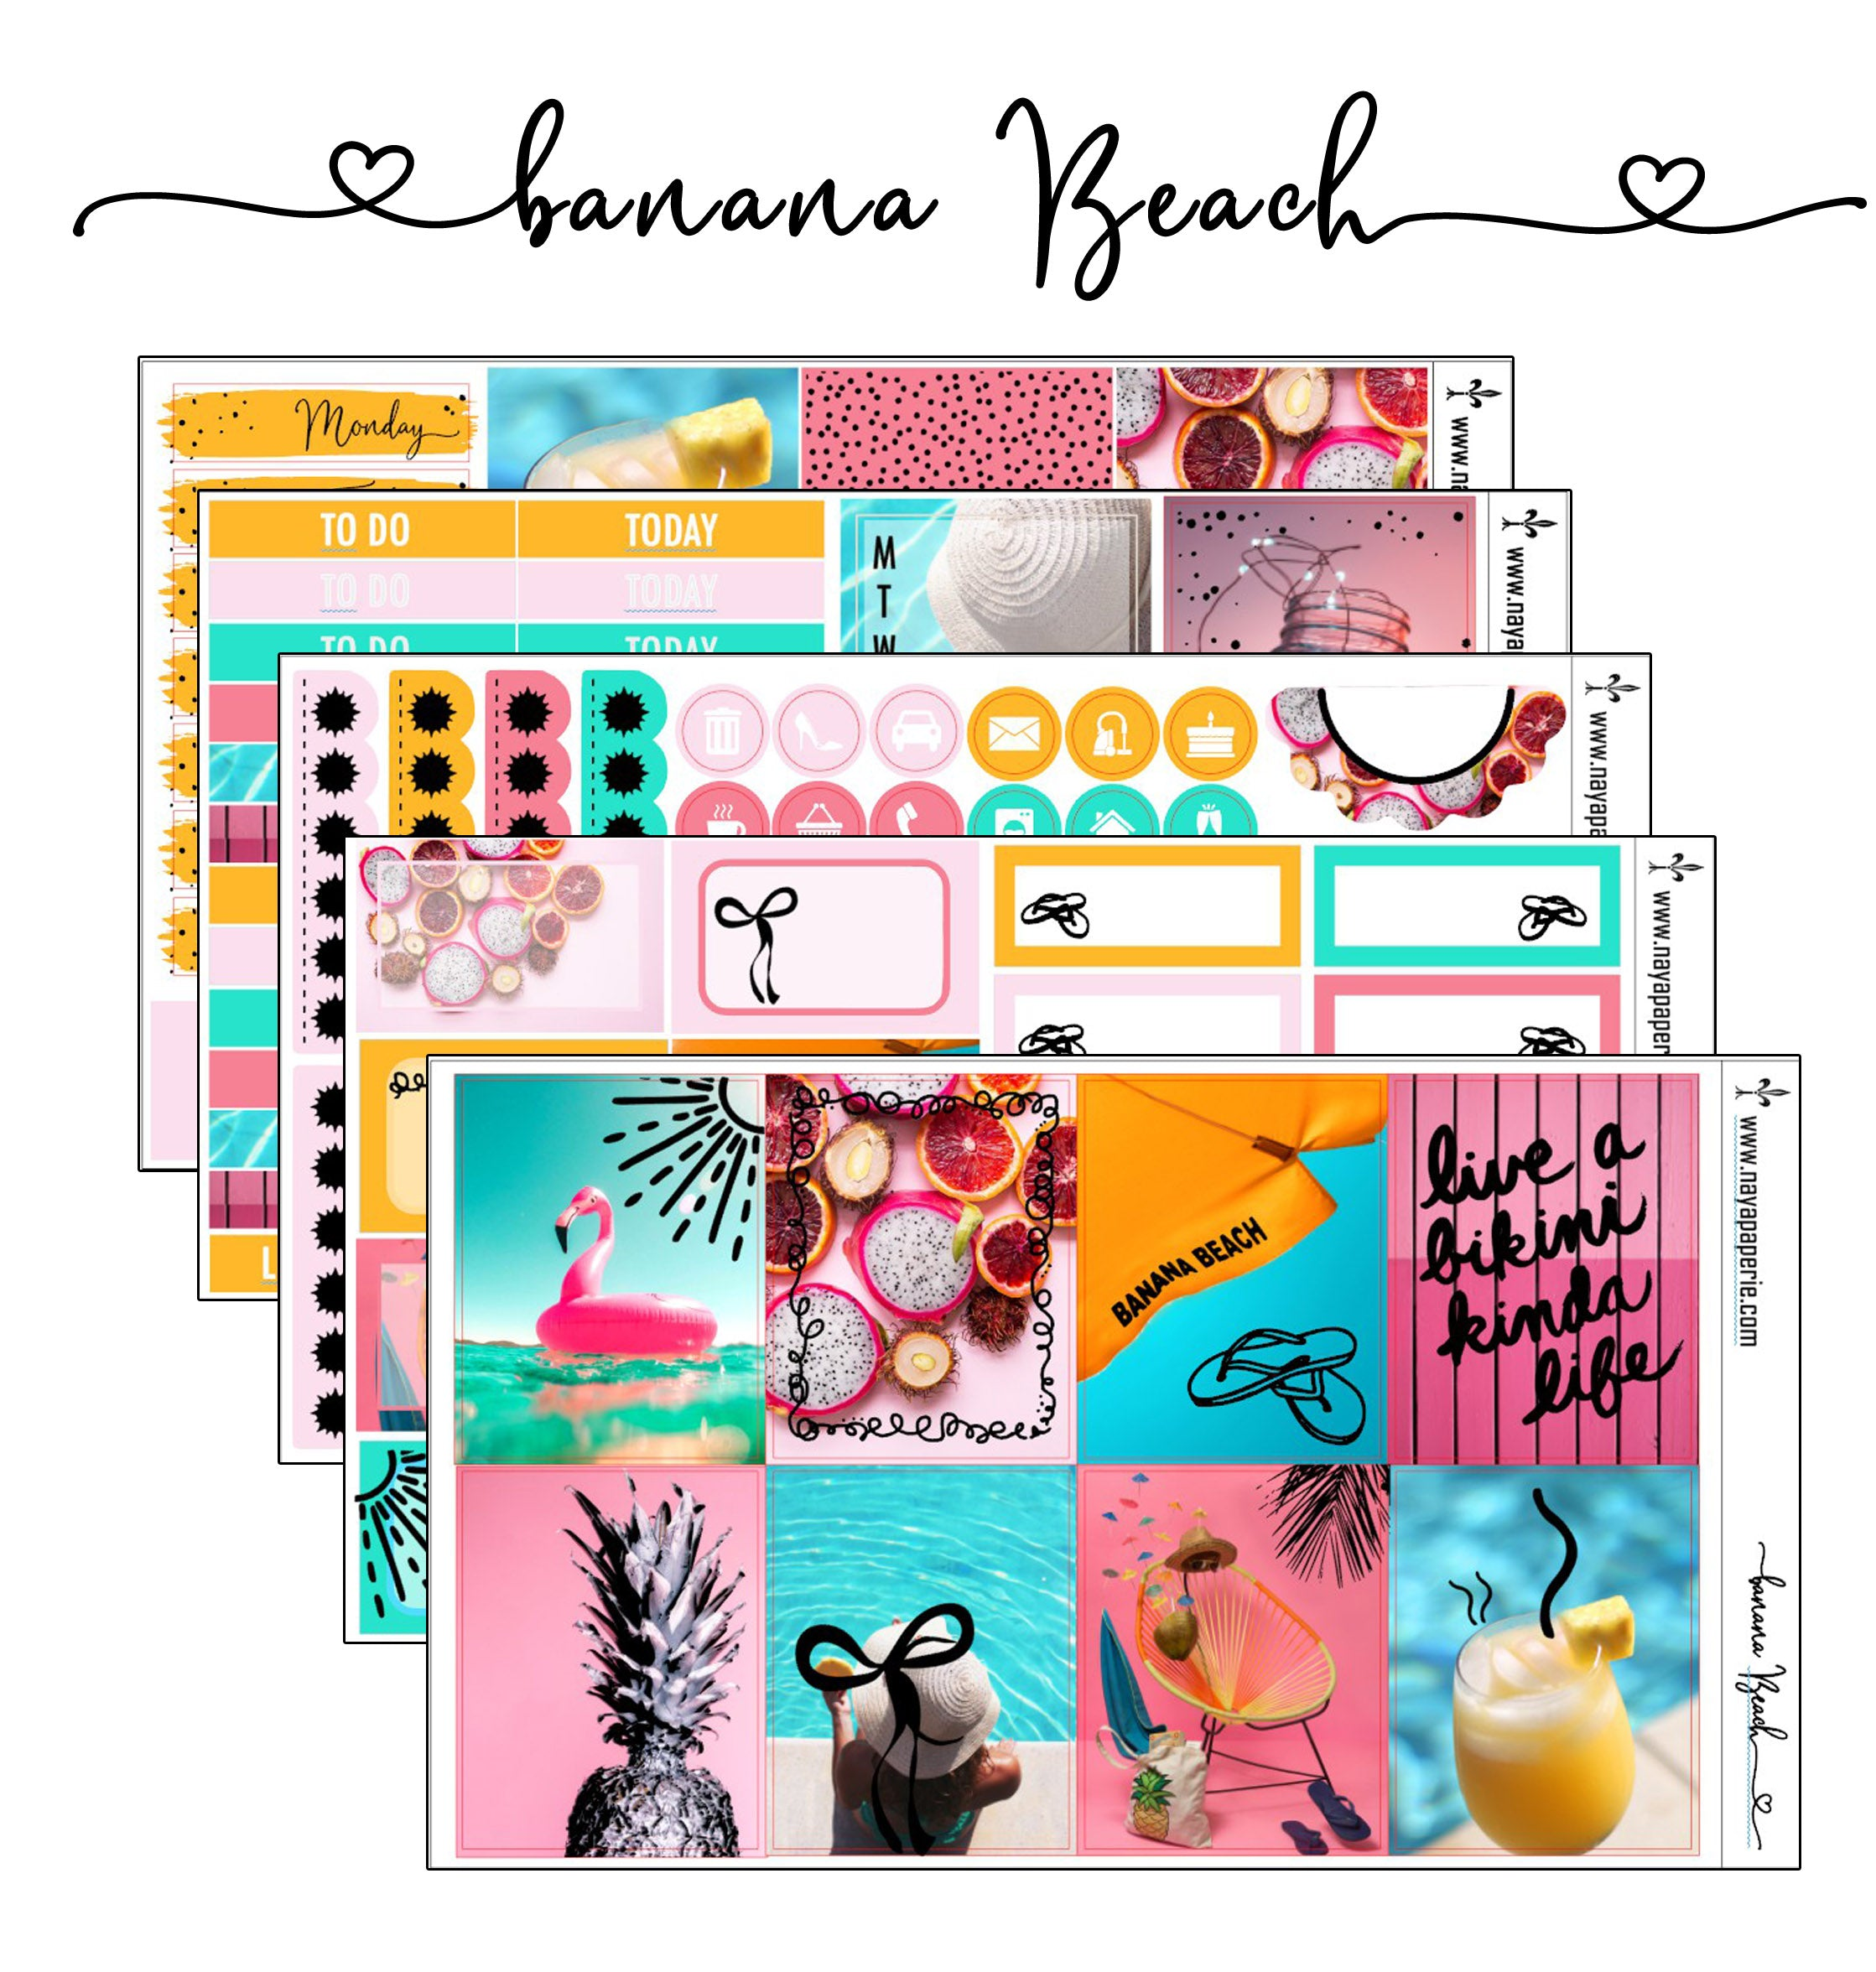 Banana Beach foiled stickers kit- 5 sheets